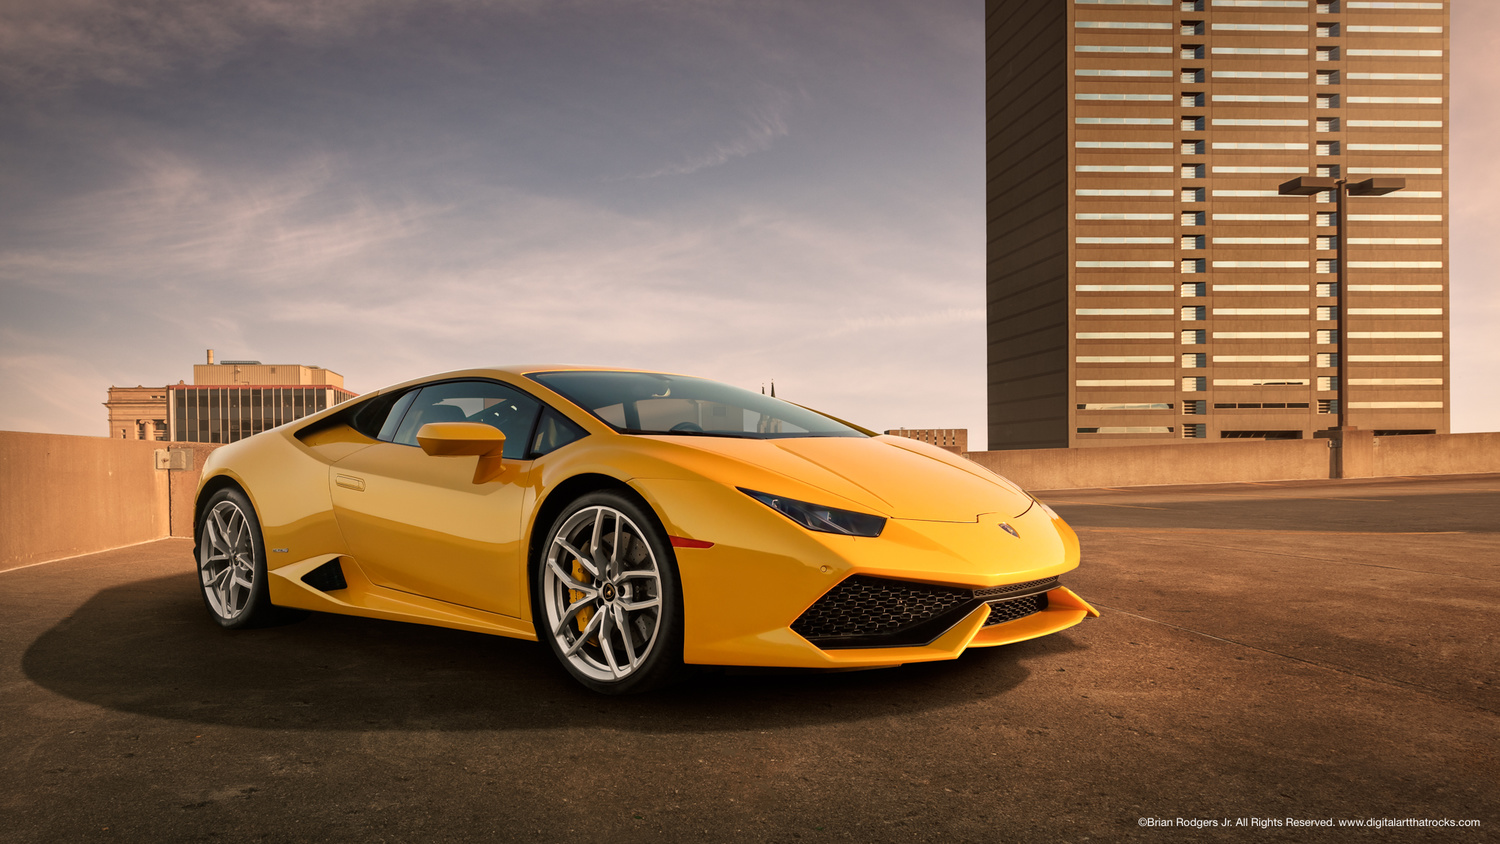 Yellow Lamborghini by Brian Rodgers Jr.